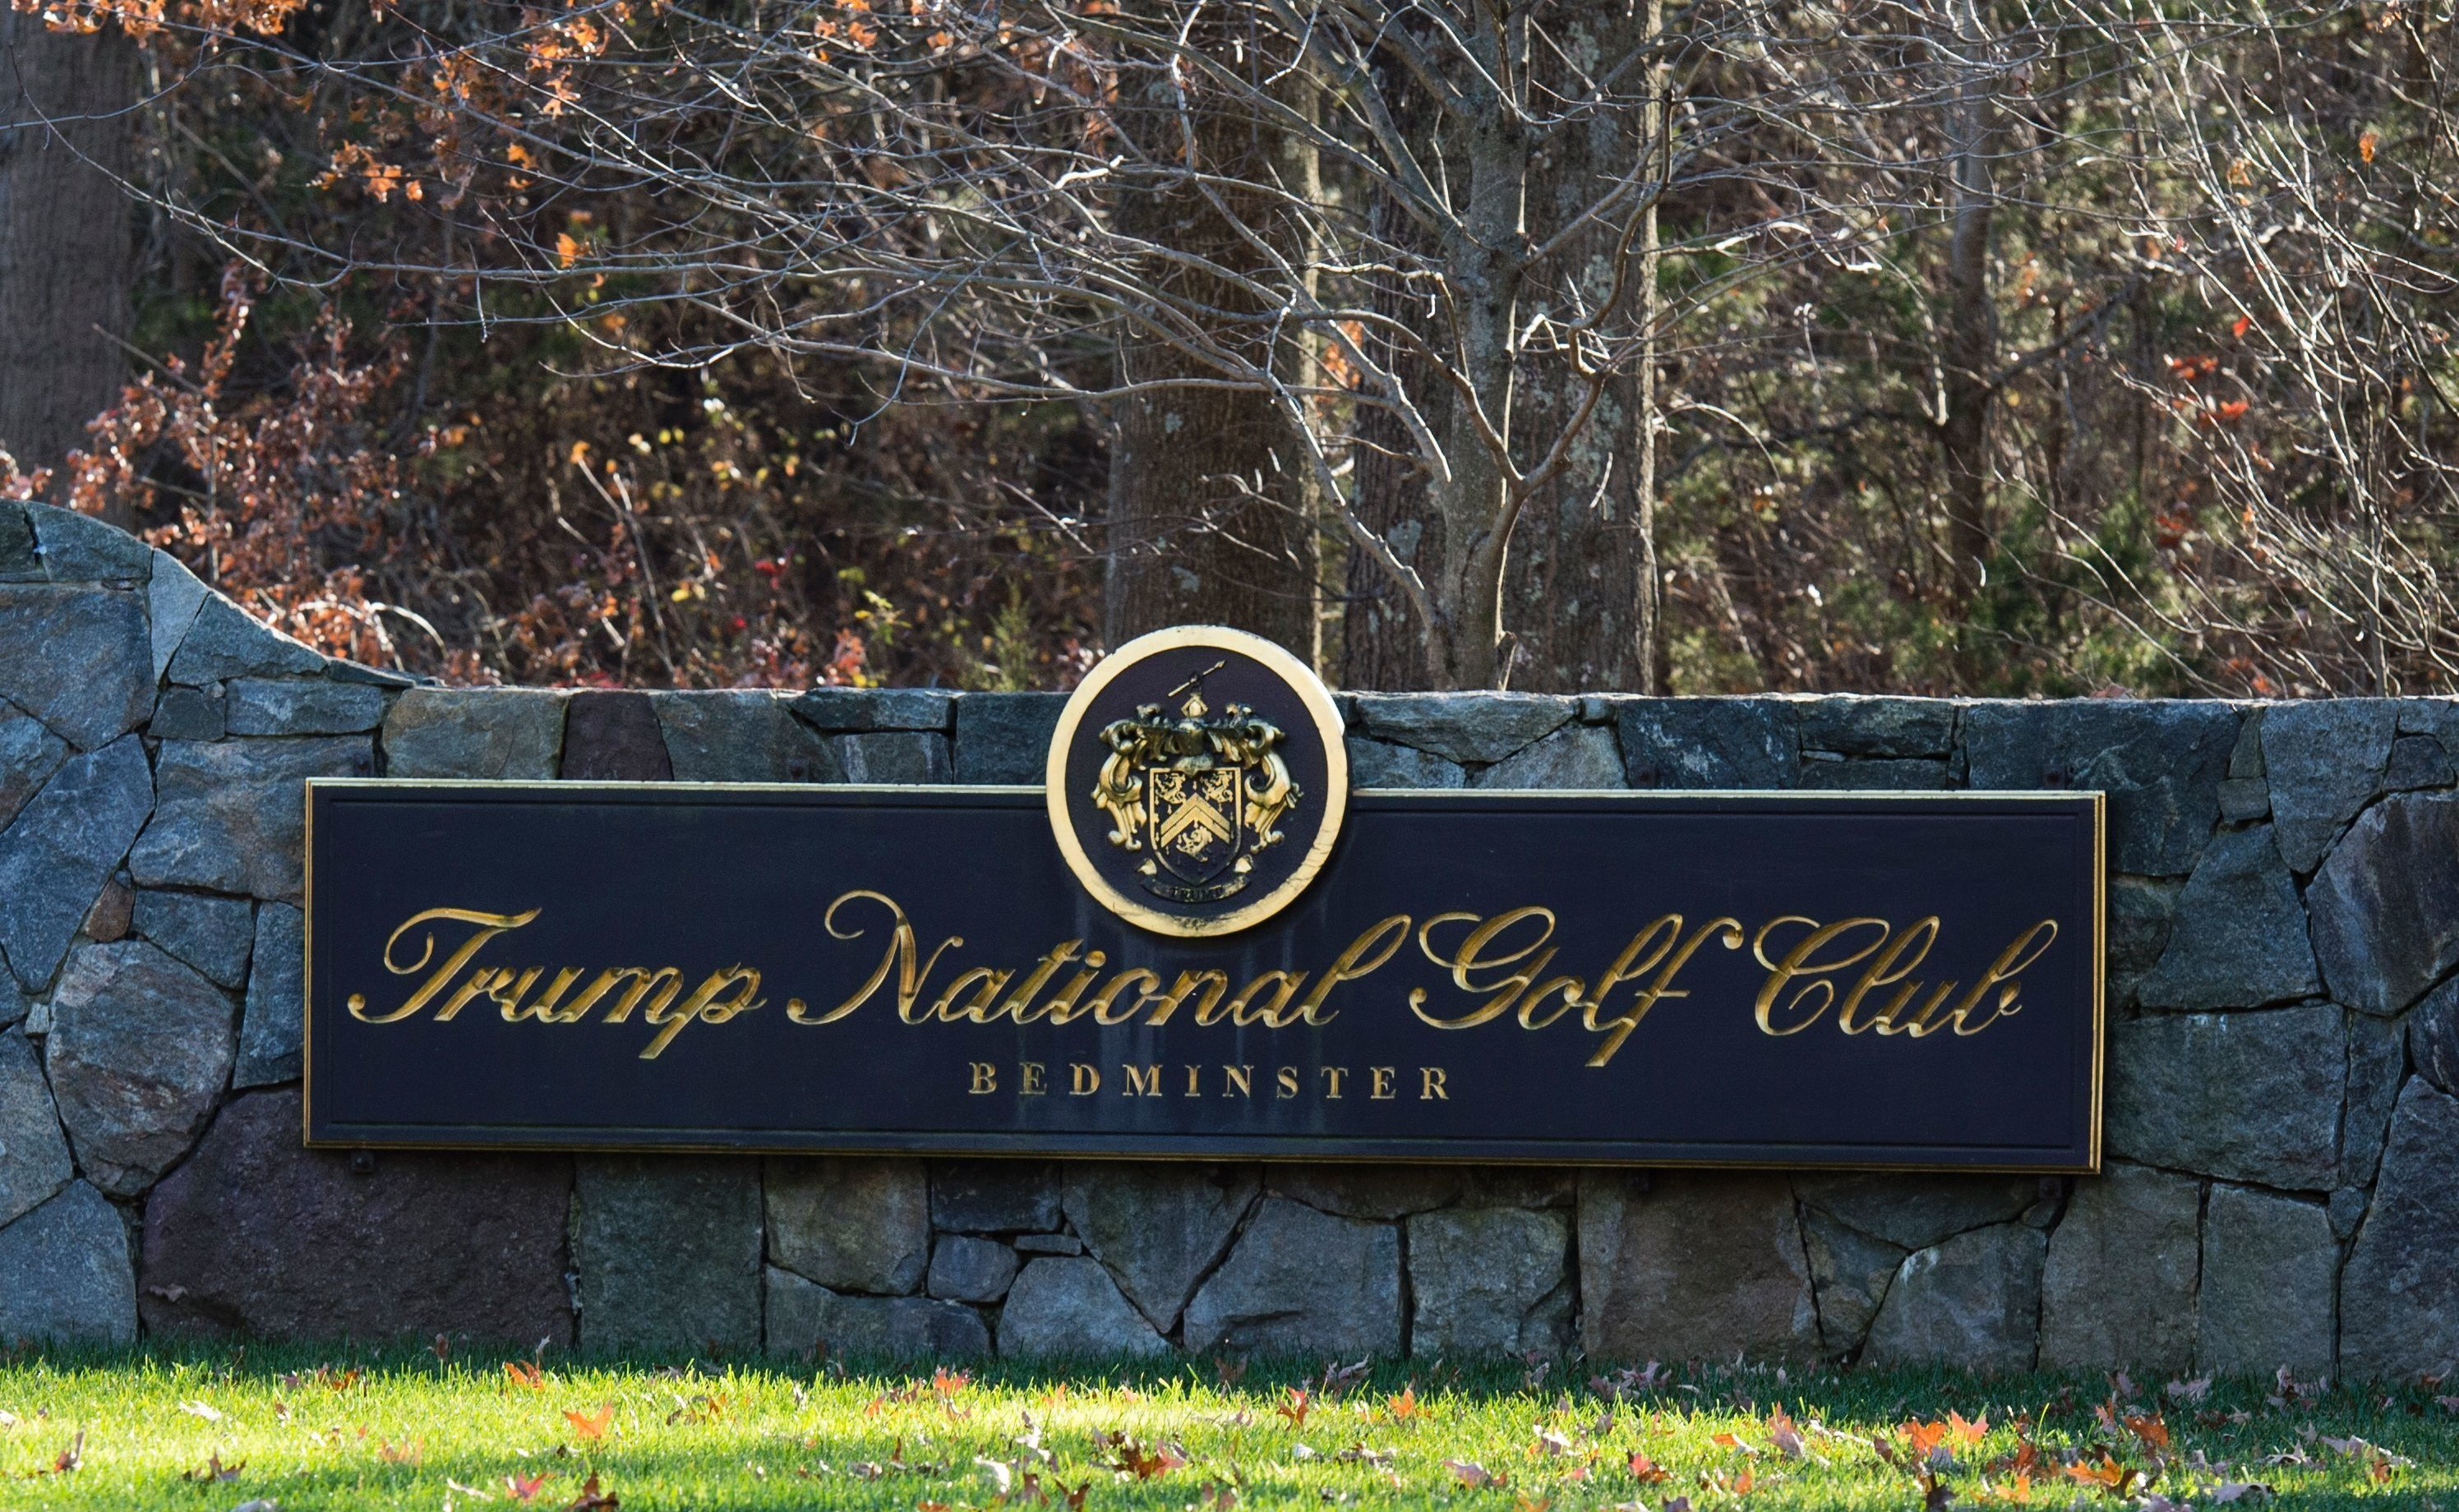 A sign on the stone wall greets visitors to the Trump National Golf Club on November 18, 2016 in Bedminster Township, New Jer